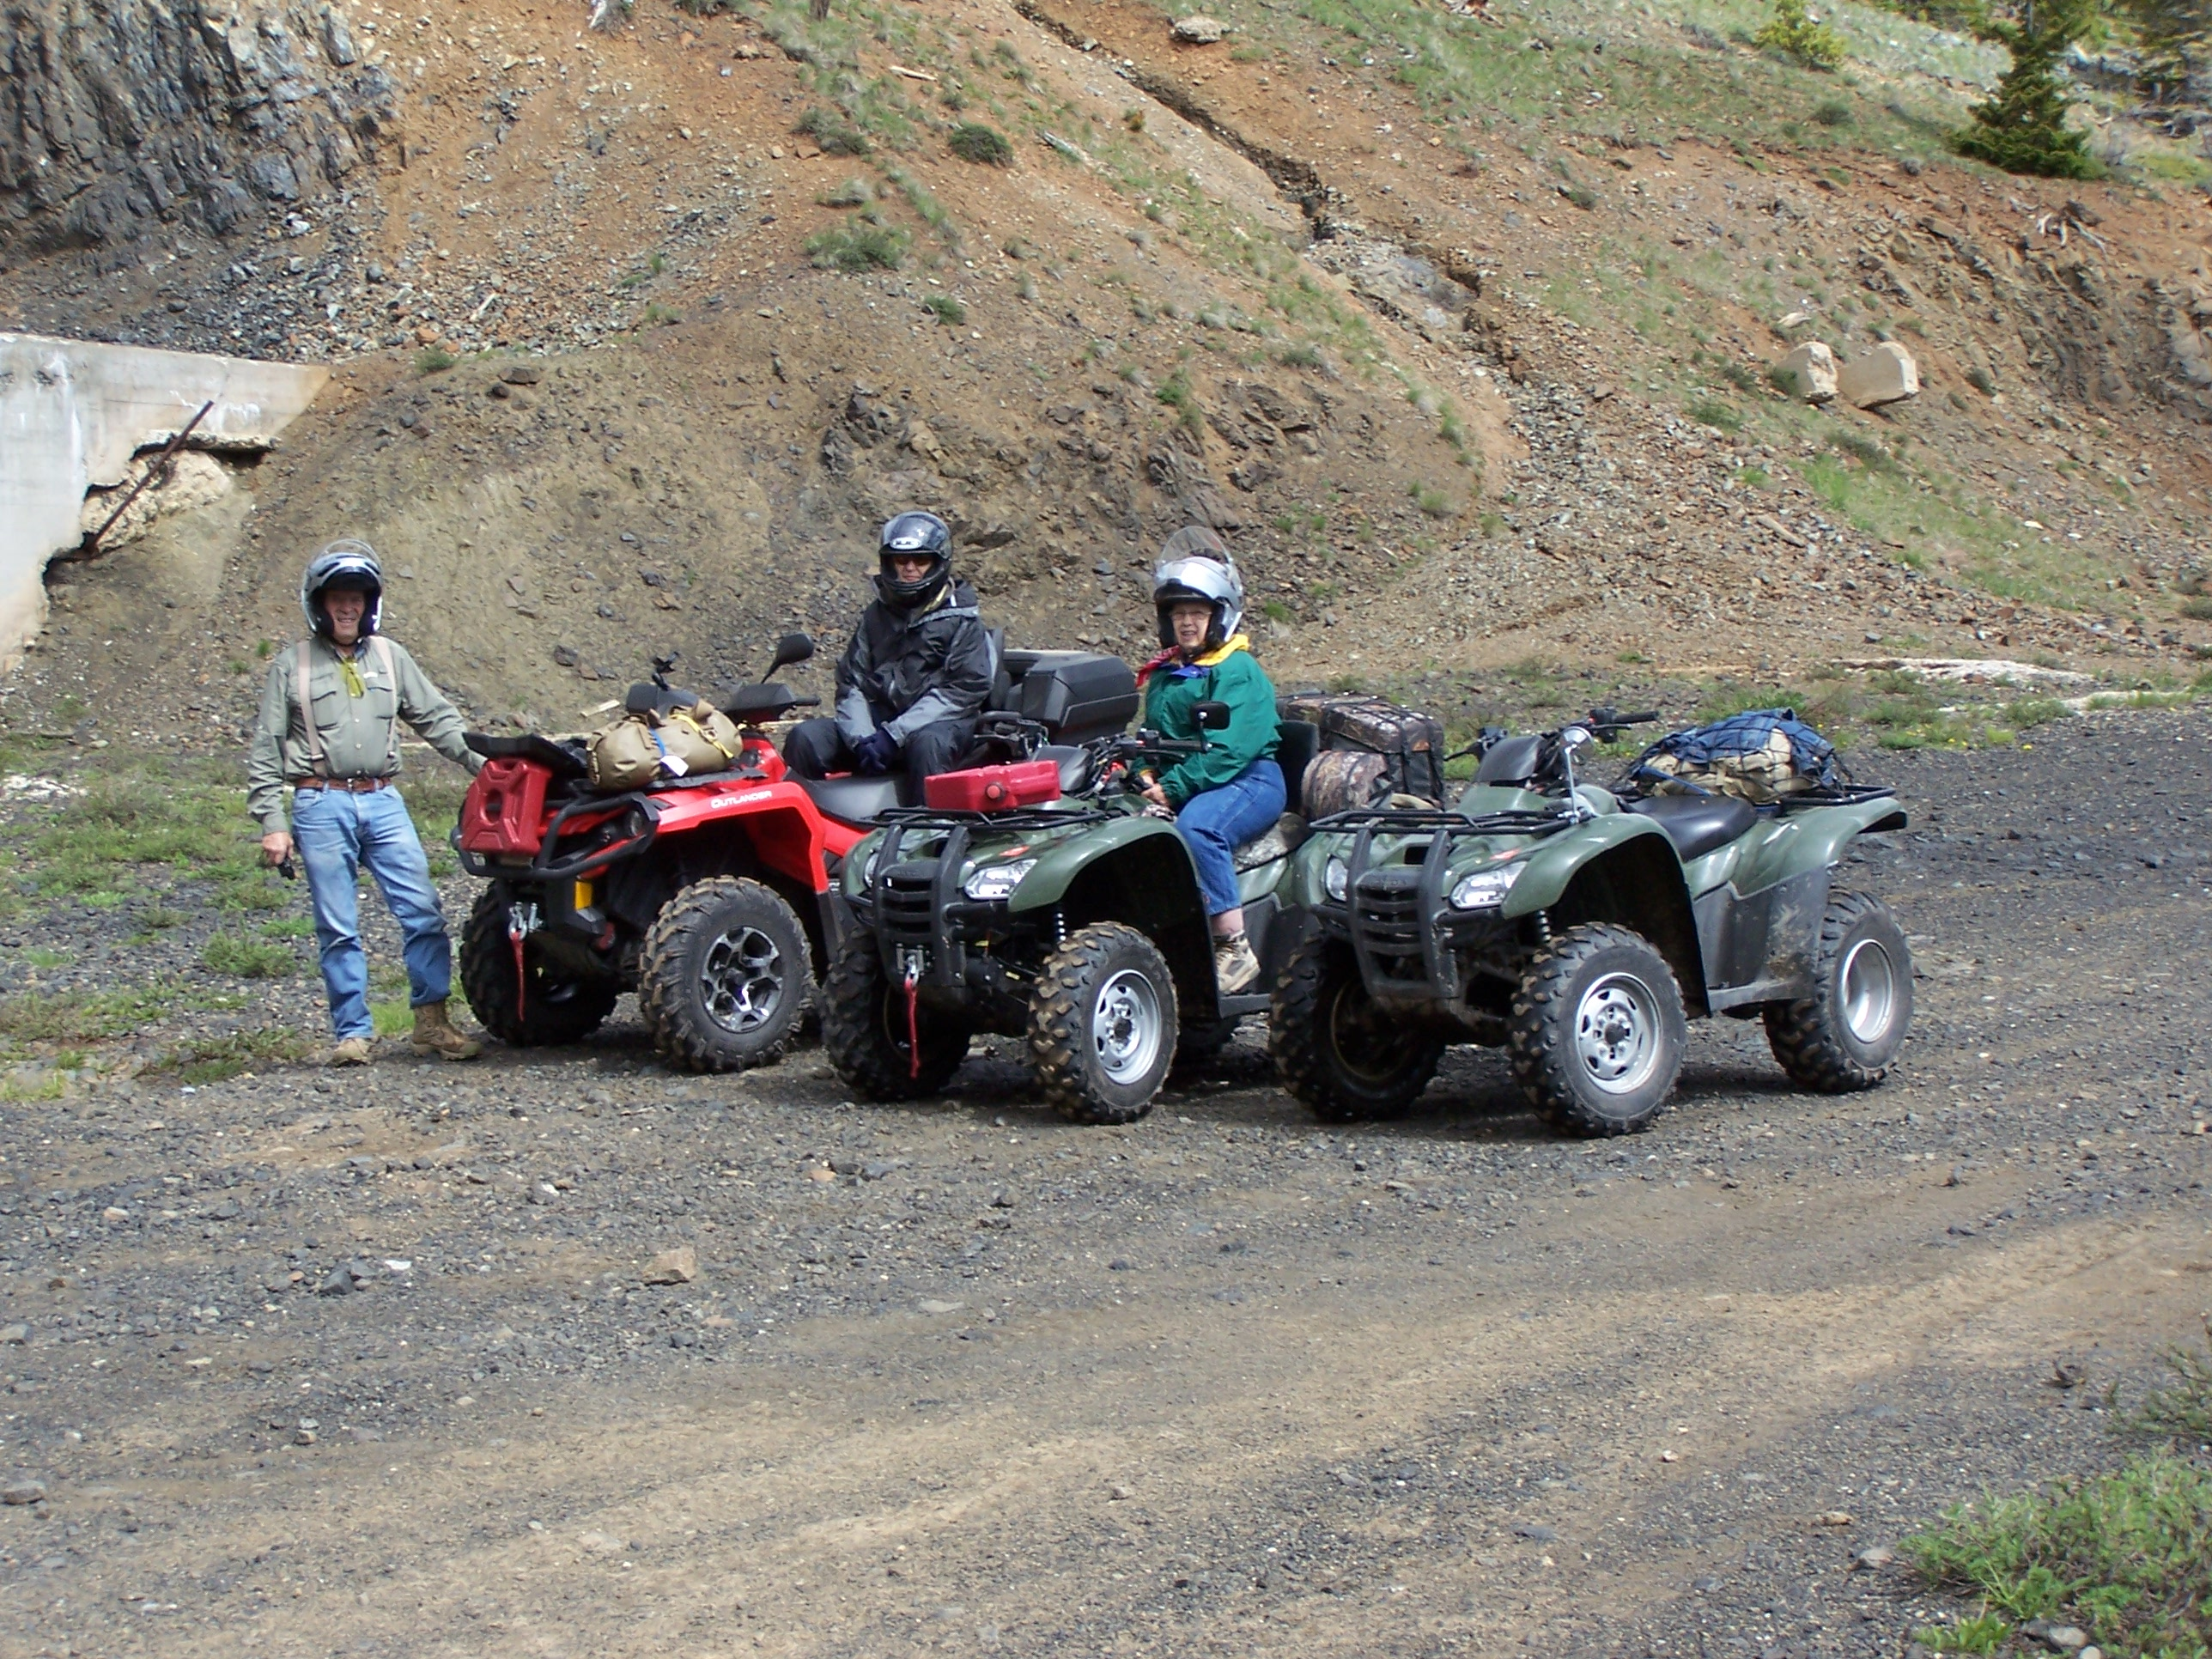 Benbow Road ATV Ride Near the Mine